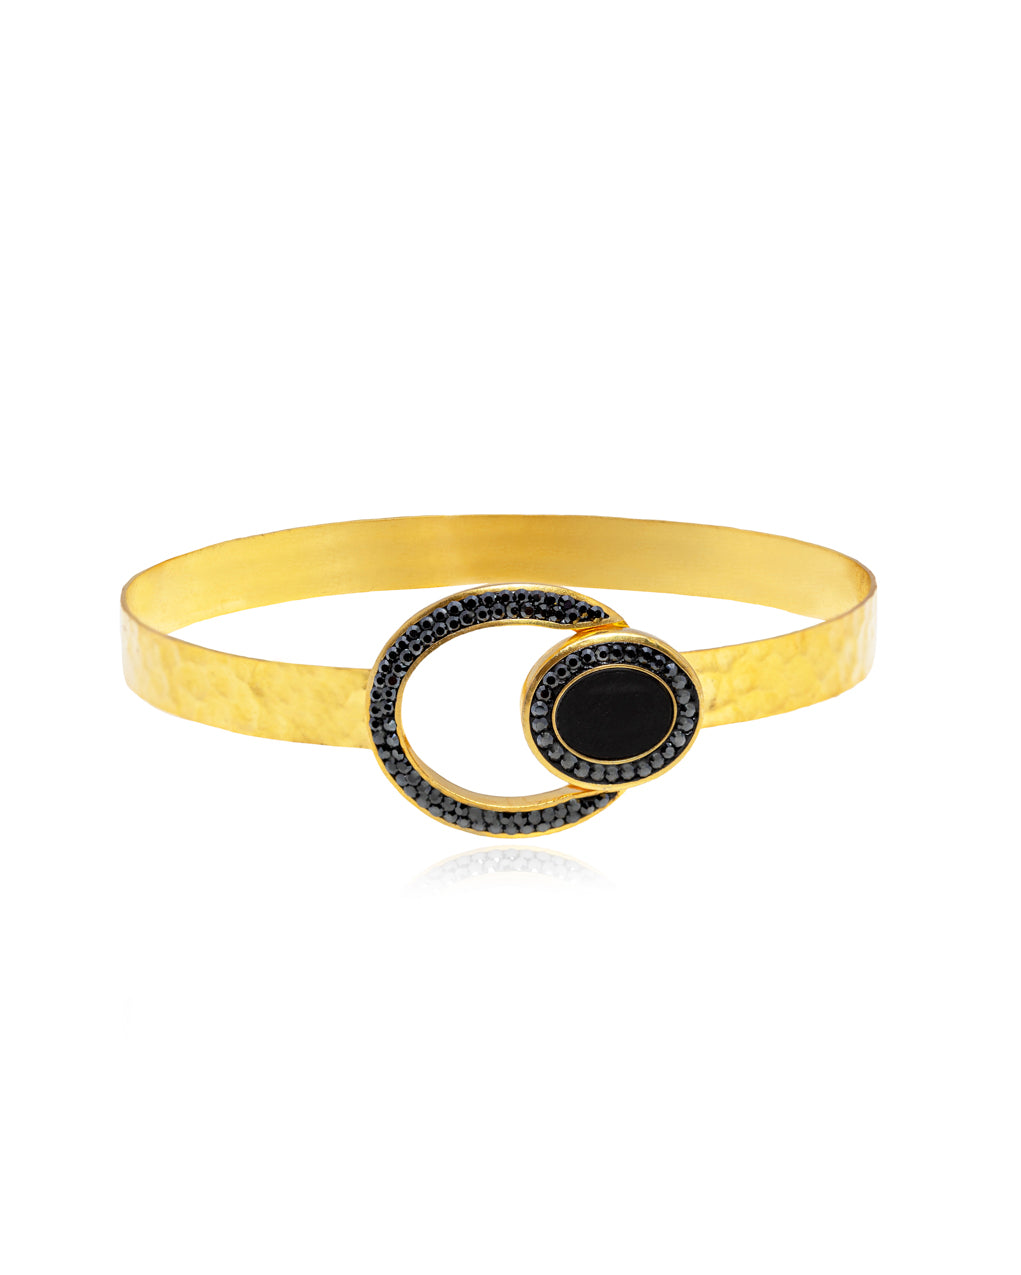 Oval Gem Bangle Bracelet